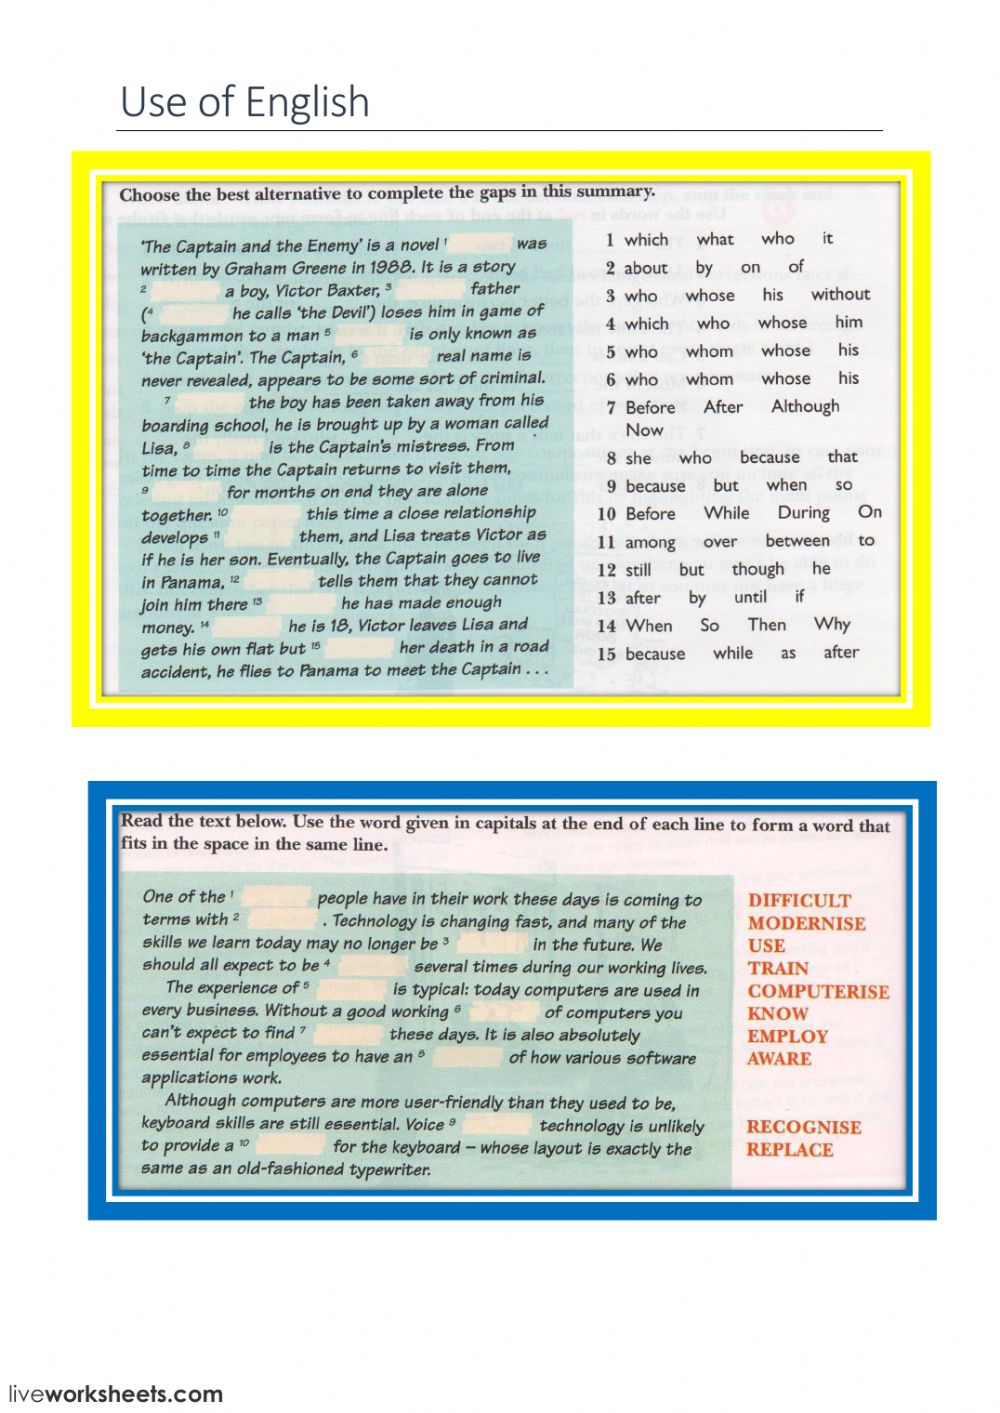 Use of English (books- computers) - Interactive worksheet